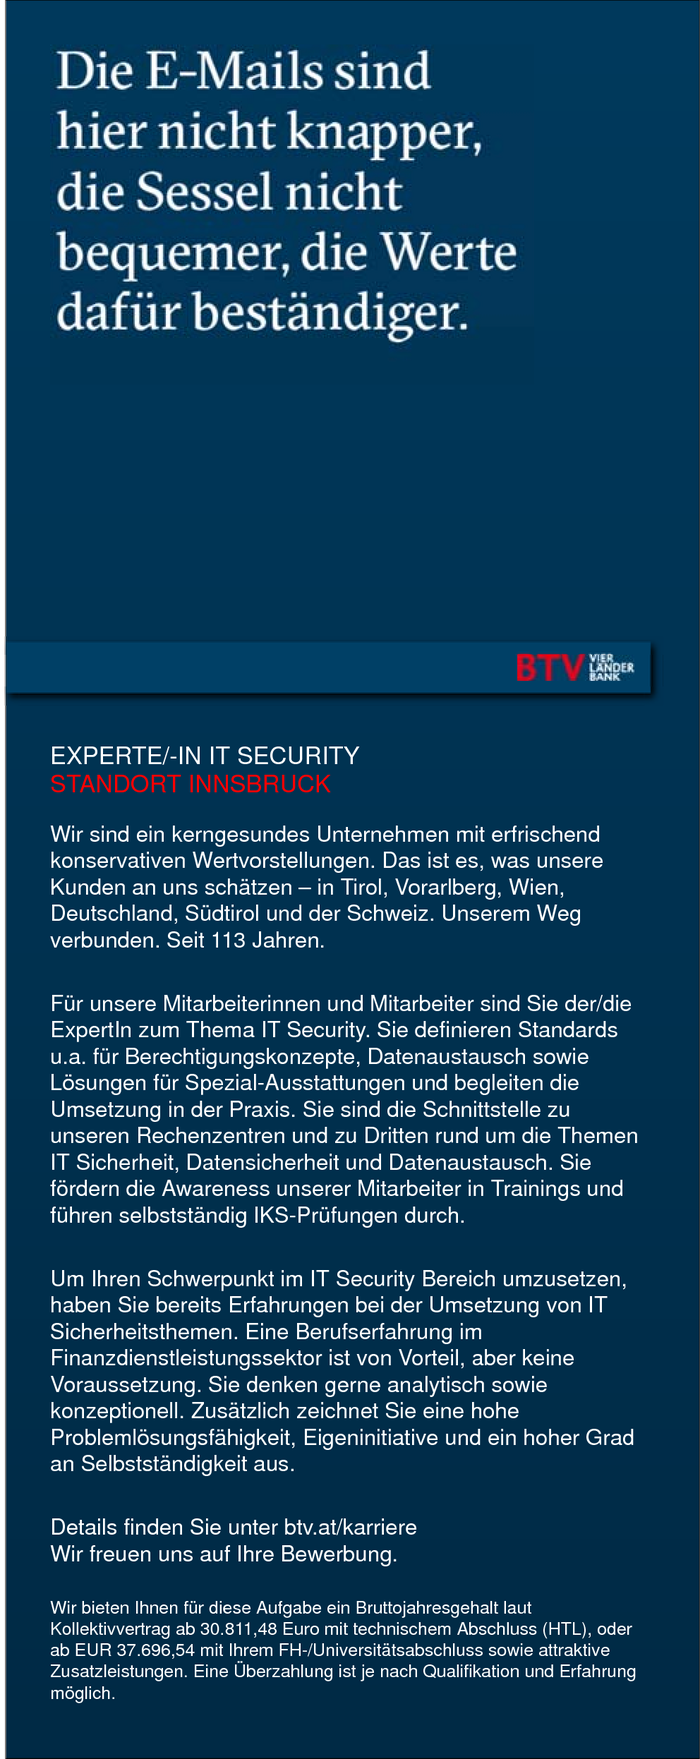 EXPERTE/-IN IT SECURITY